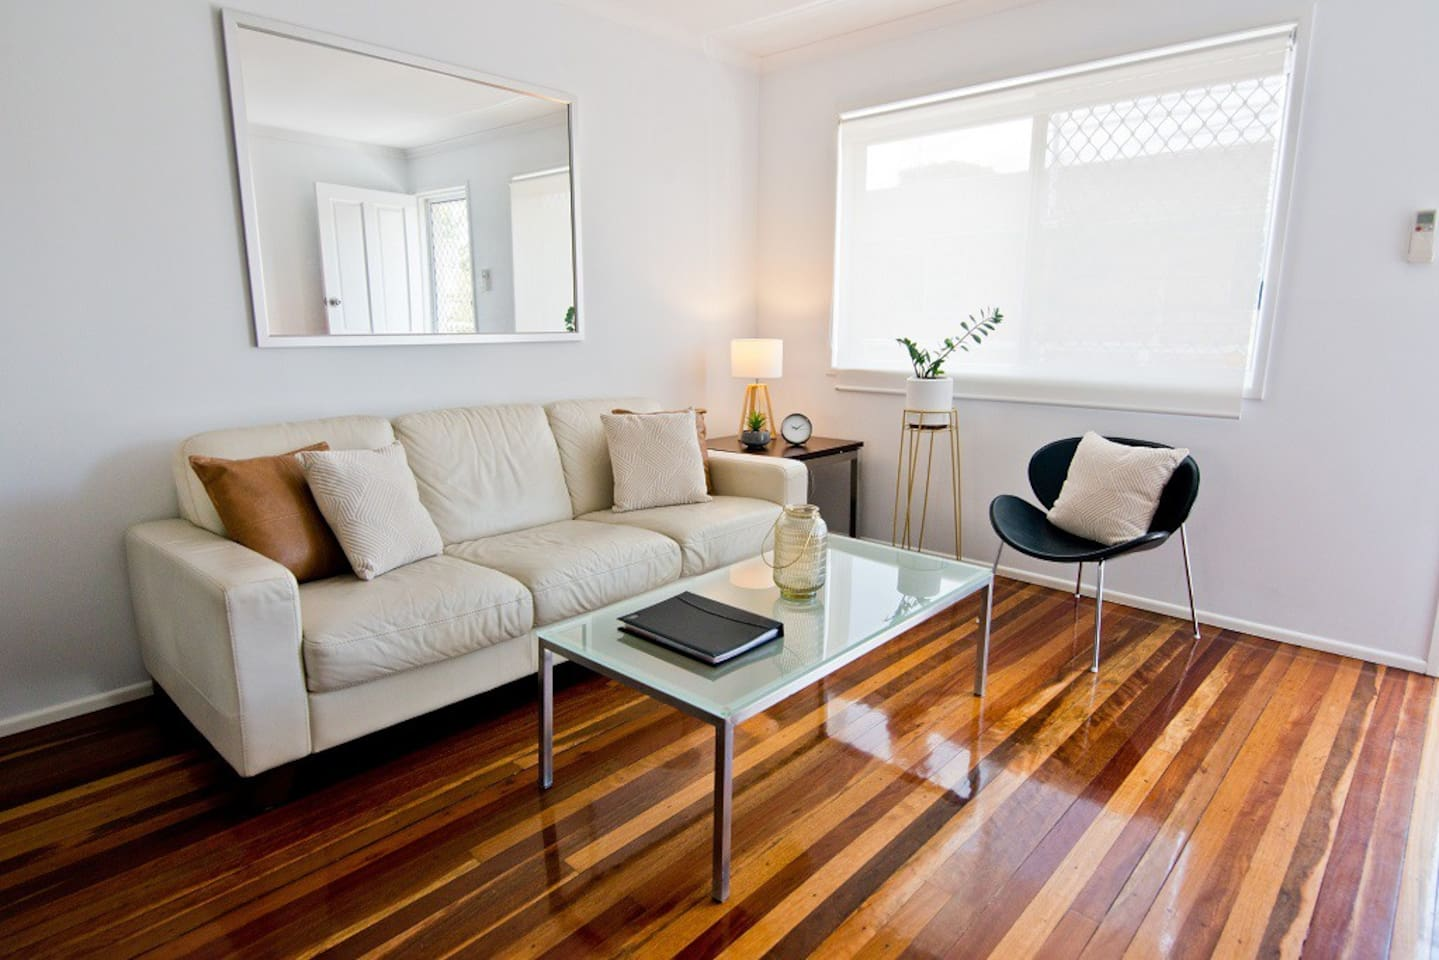 Apartment 1: Modern open plan air-conditioned living area